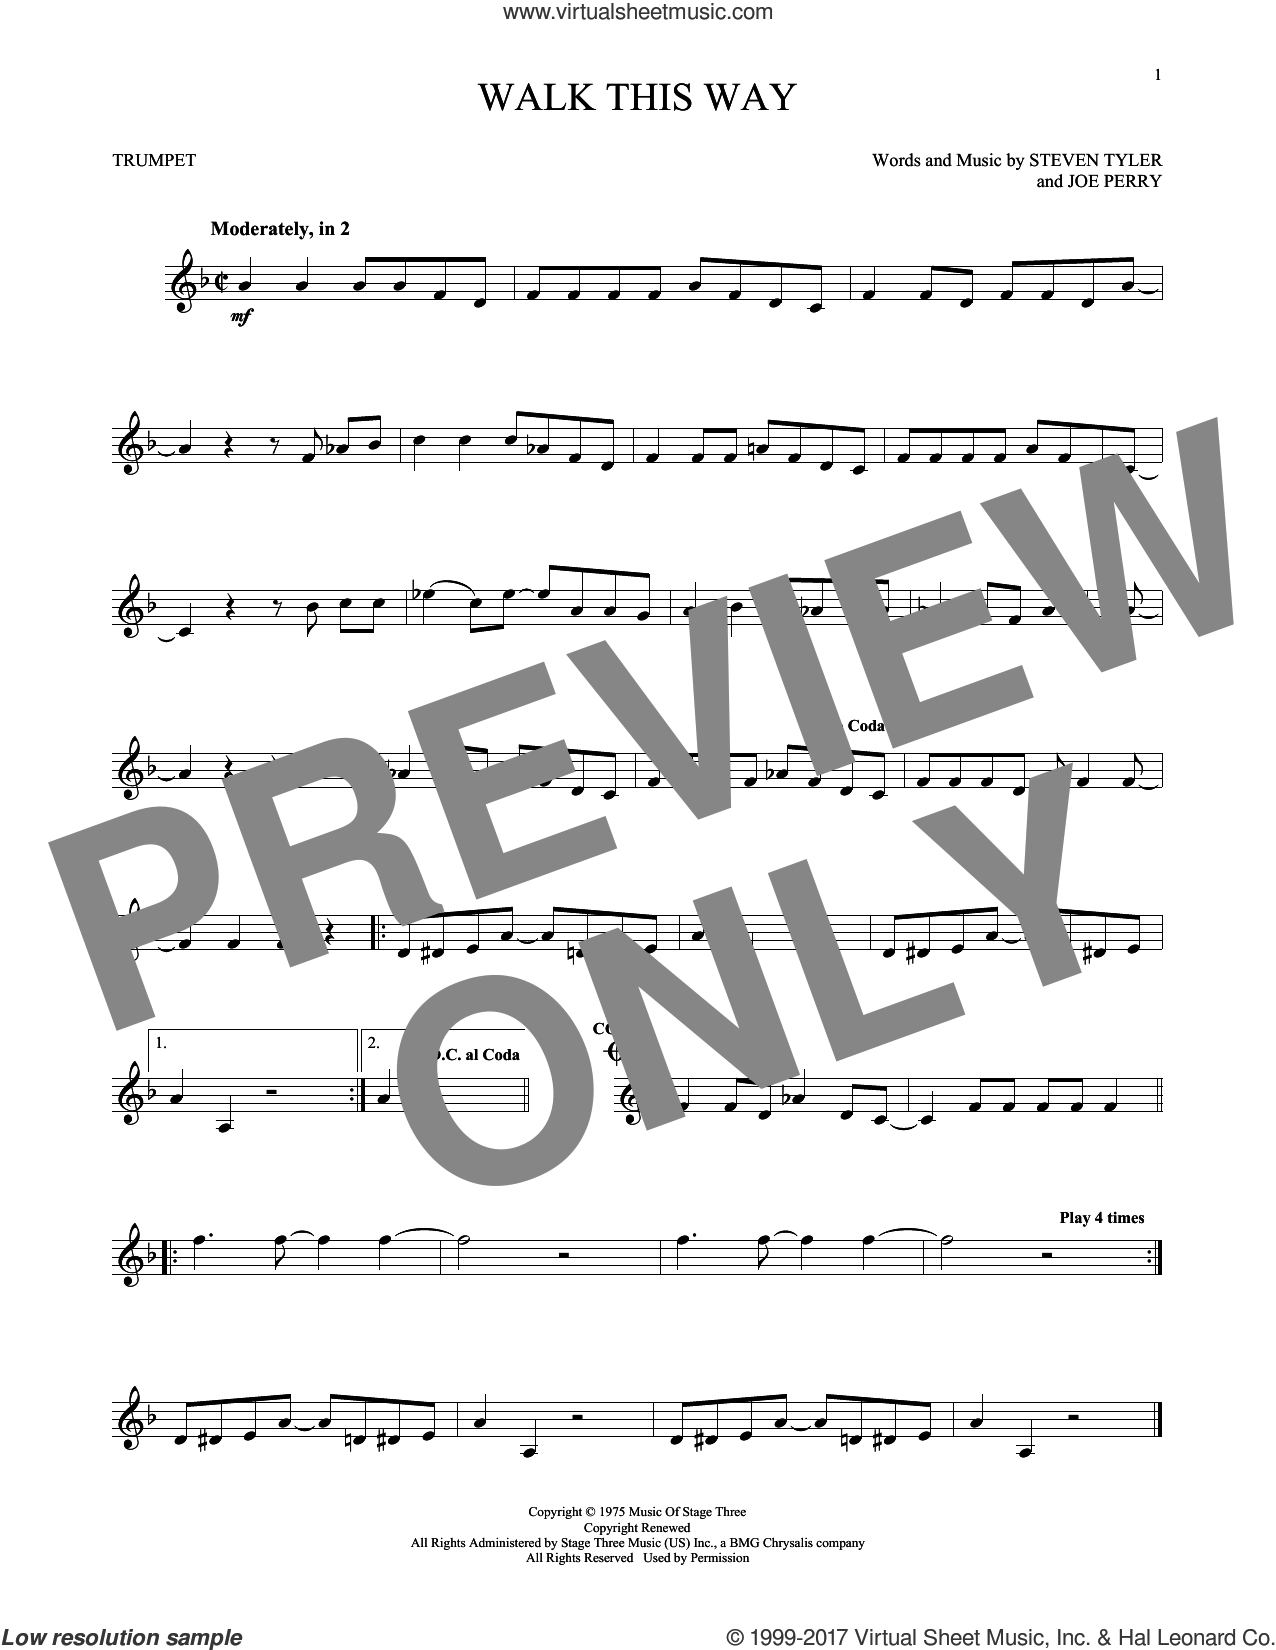 Walk This Way sheet music for trumpet solo by Aerosmith, Run D.M.C., Joe Perry and Steven Tyler, intermediate skill level